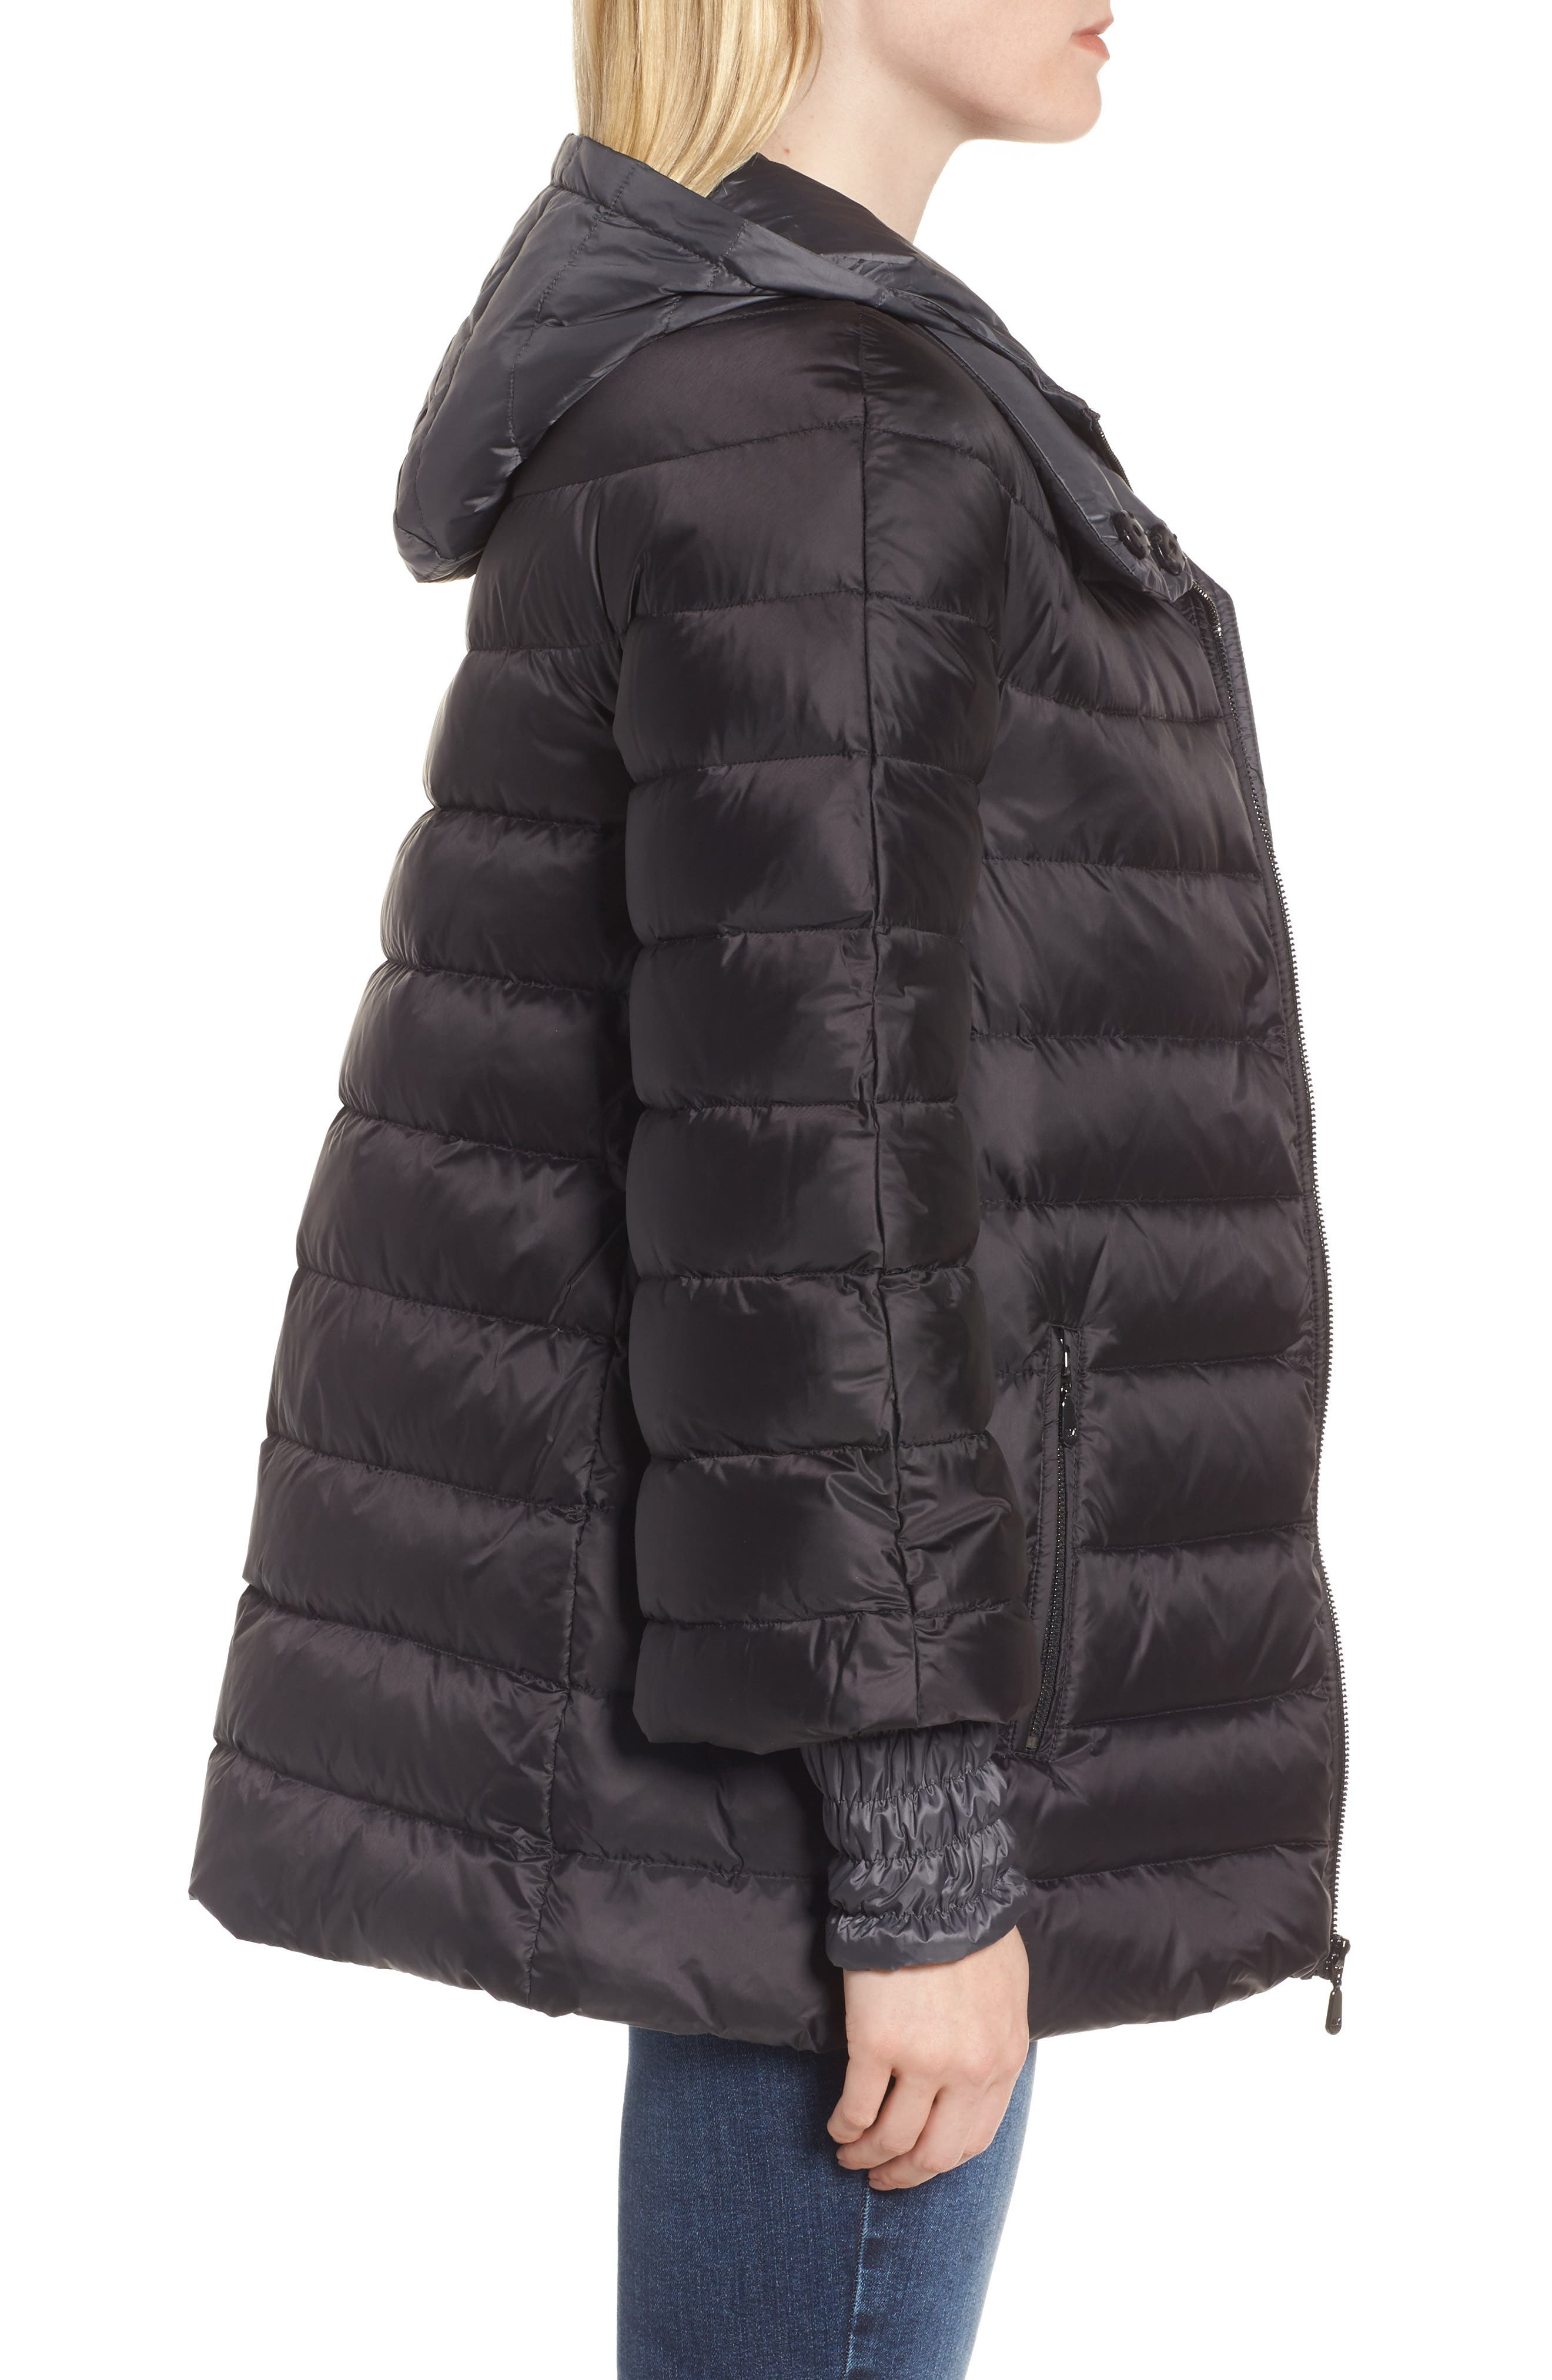 3-in-1 Layered Packable Quilted Down Coat,                             Alternate thumbnail 7, color,